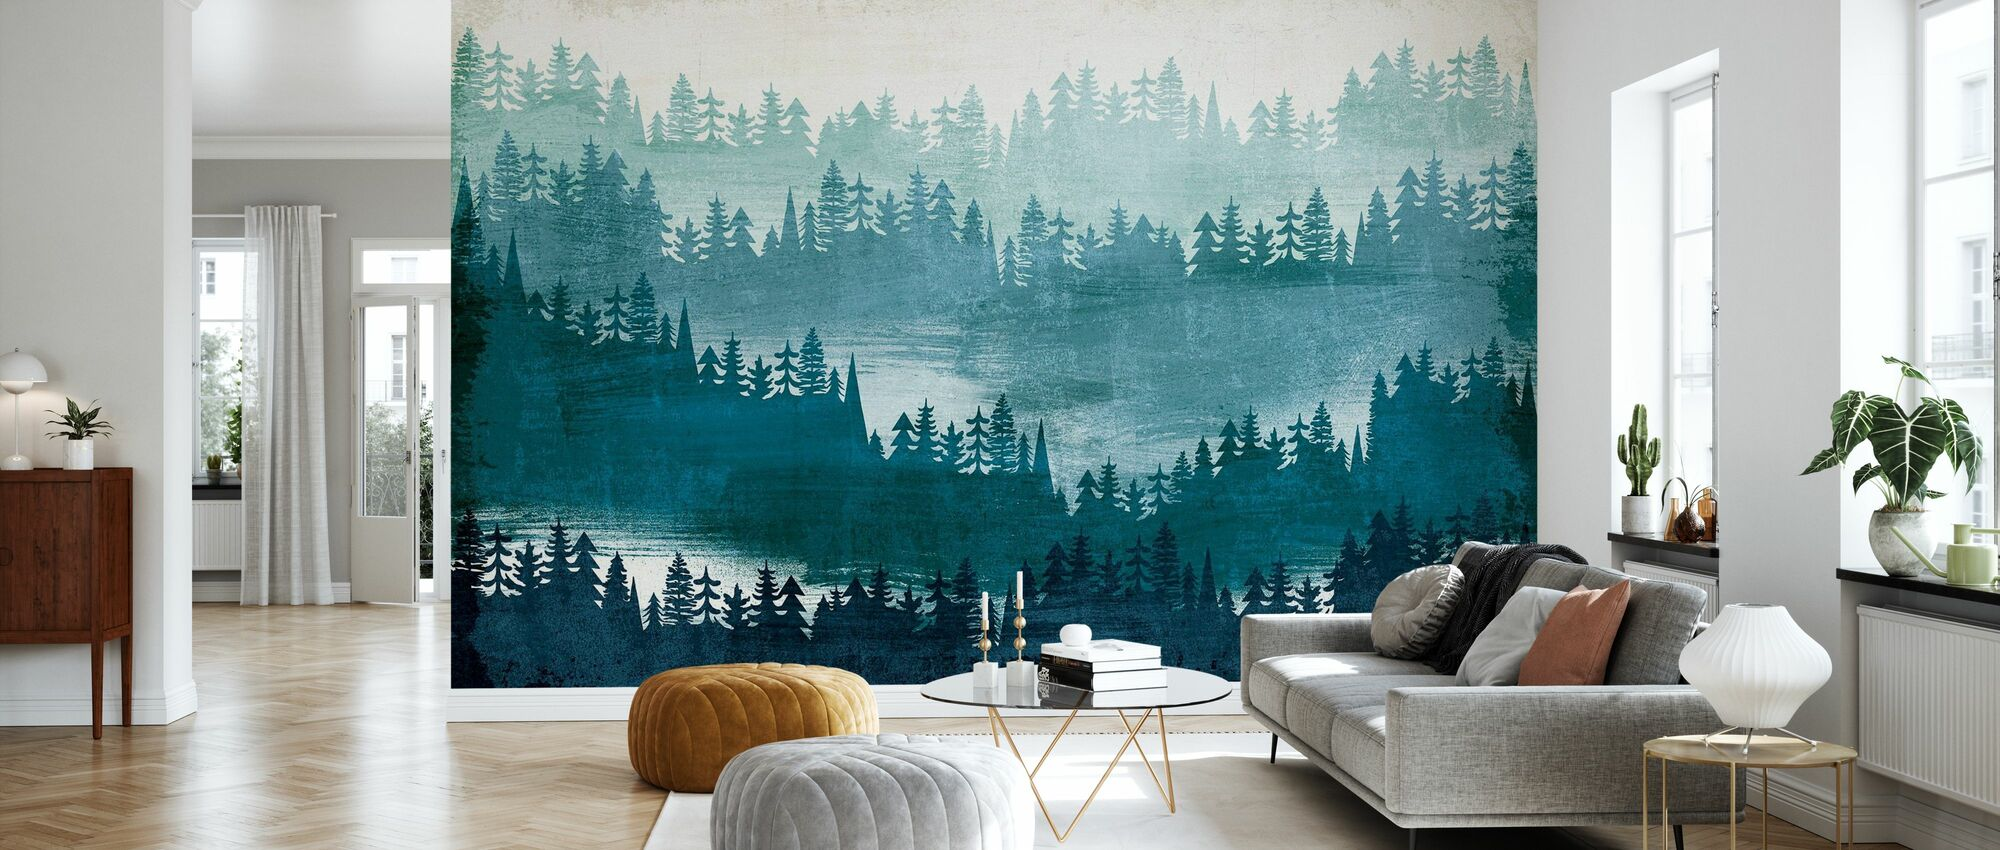 Mountainscape Blue - Wallpaper - Living Room